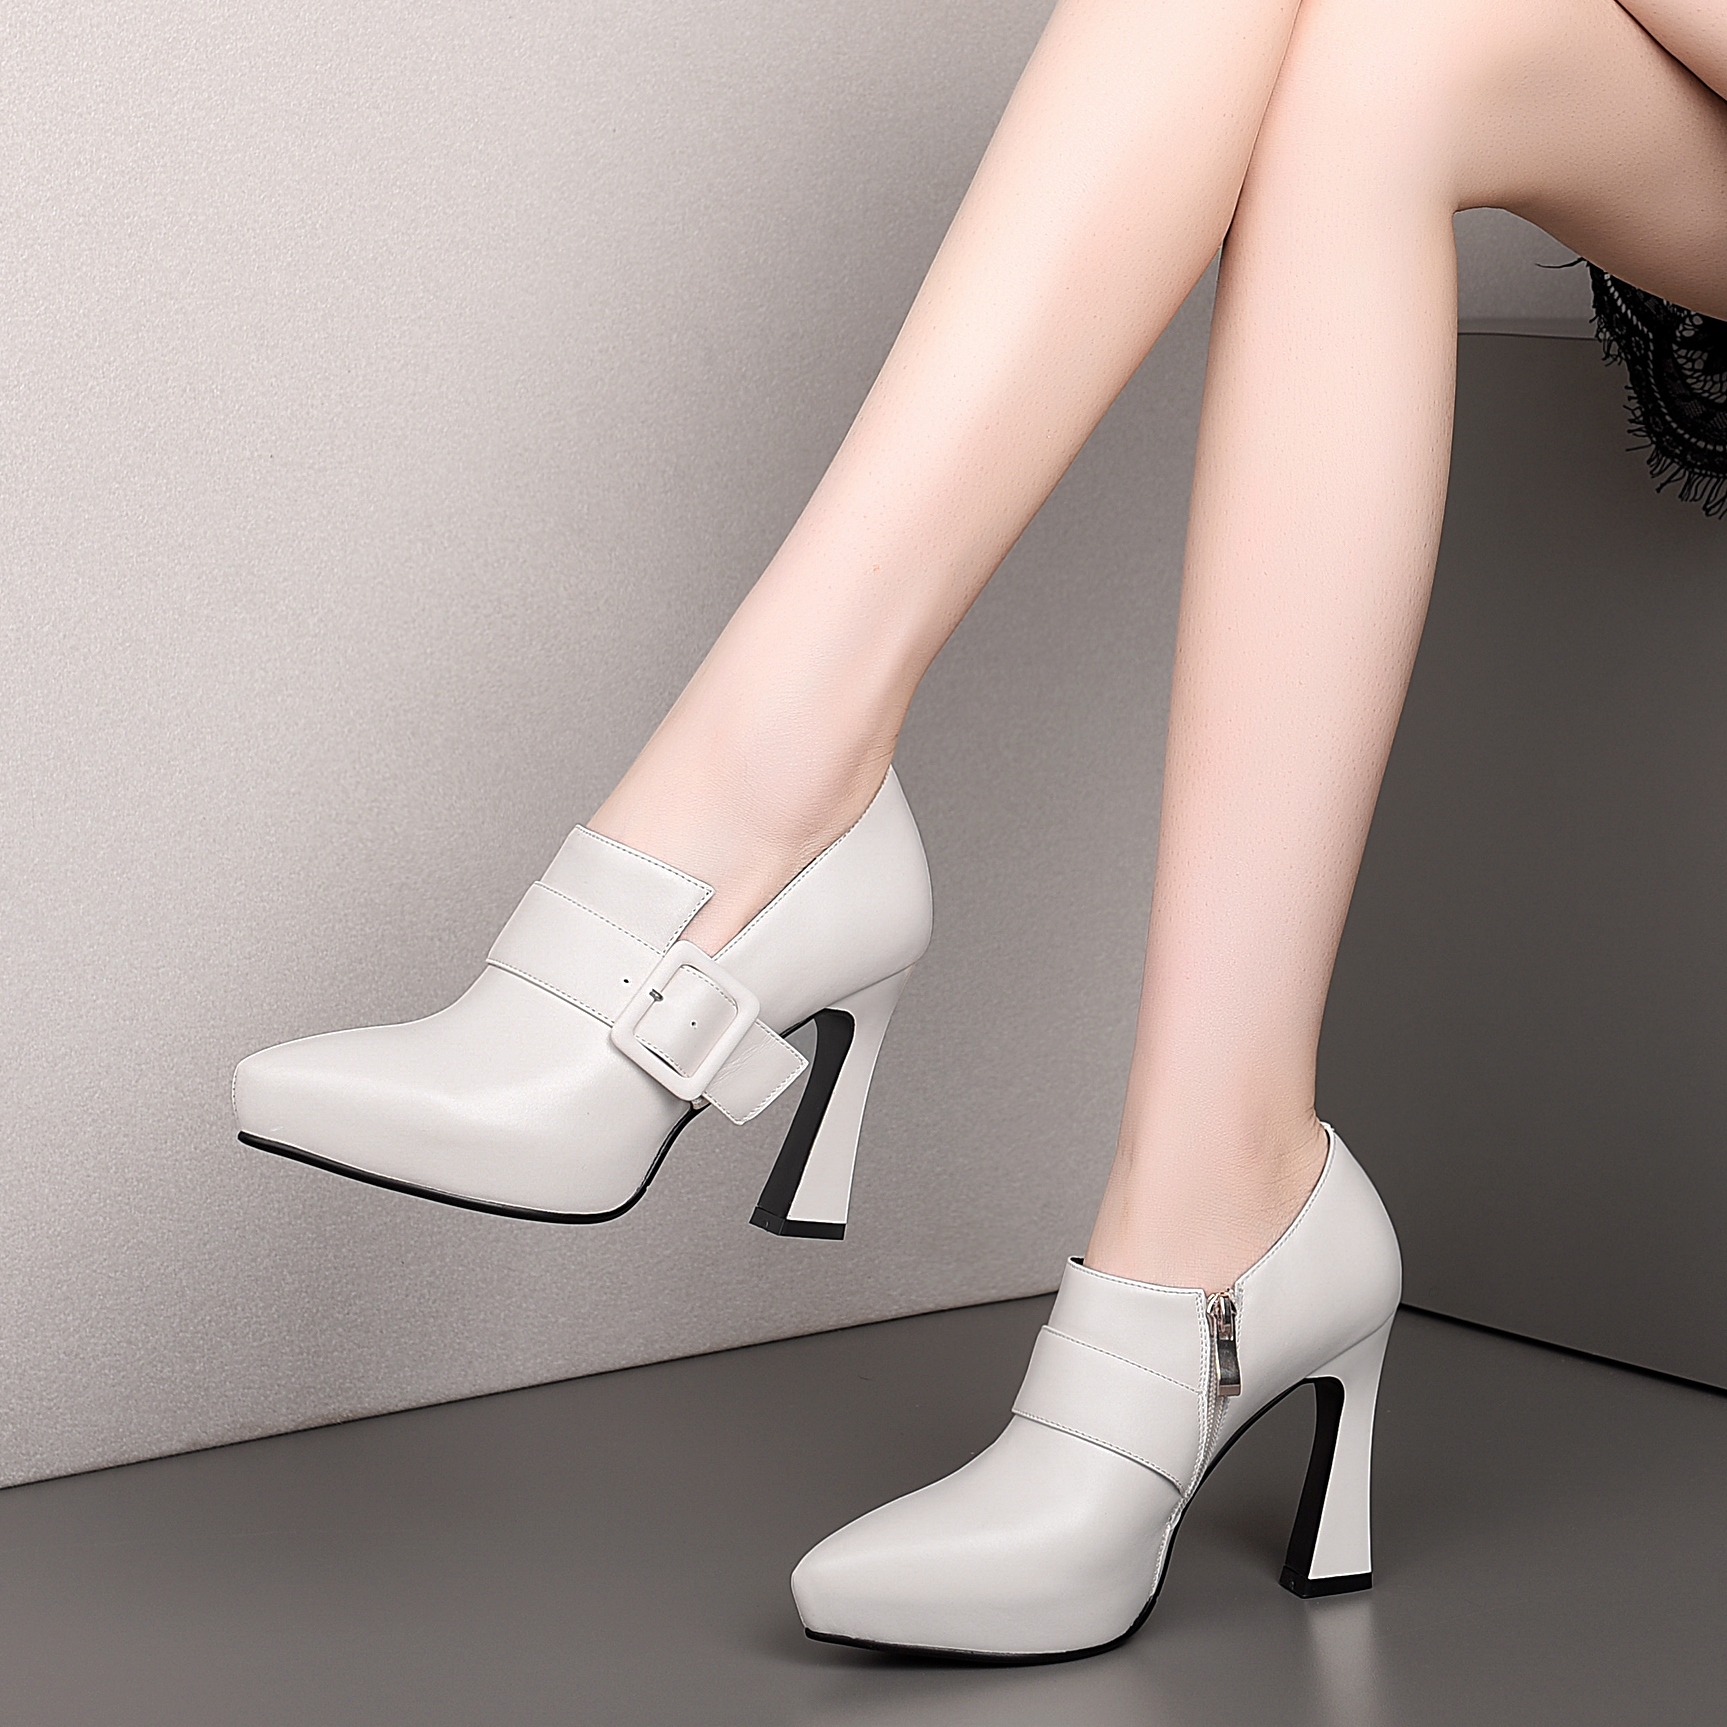 Pointed Toe Ladies Single Women Shoes Comfortable Thick High Heels Buckle Strap Luxury Office Fashion Temperament Female Shoes